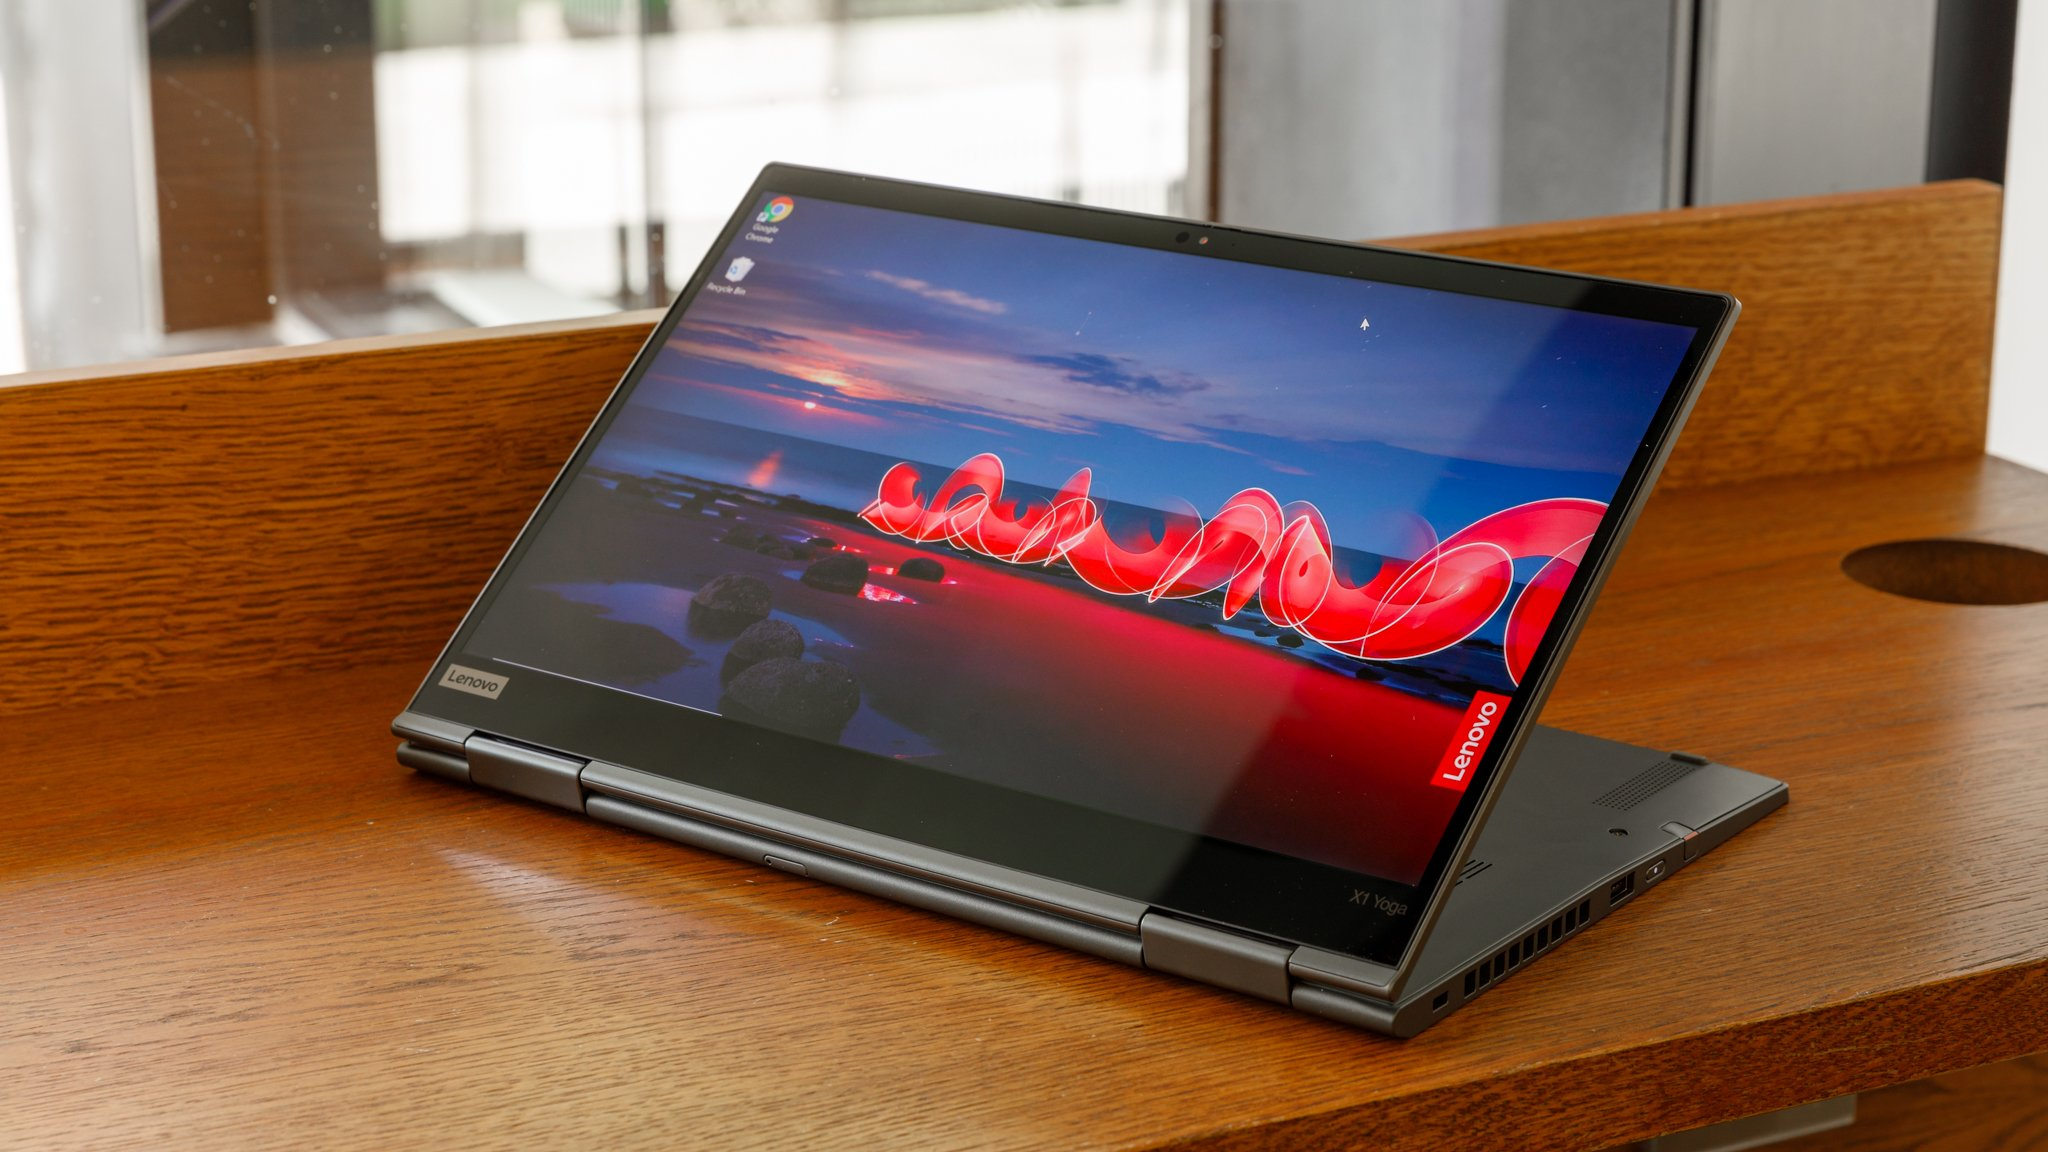 Lenovo ThinkPad X1 Yoga (2019) review: A perfect fusion of style and